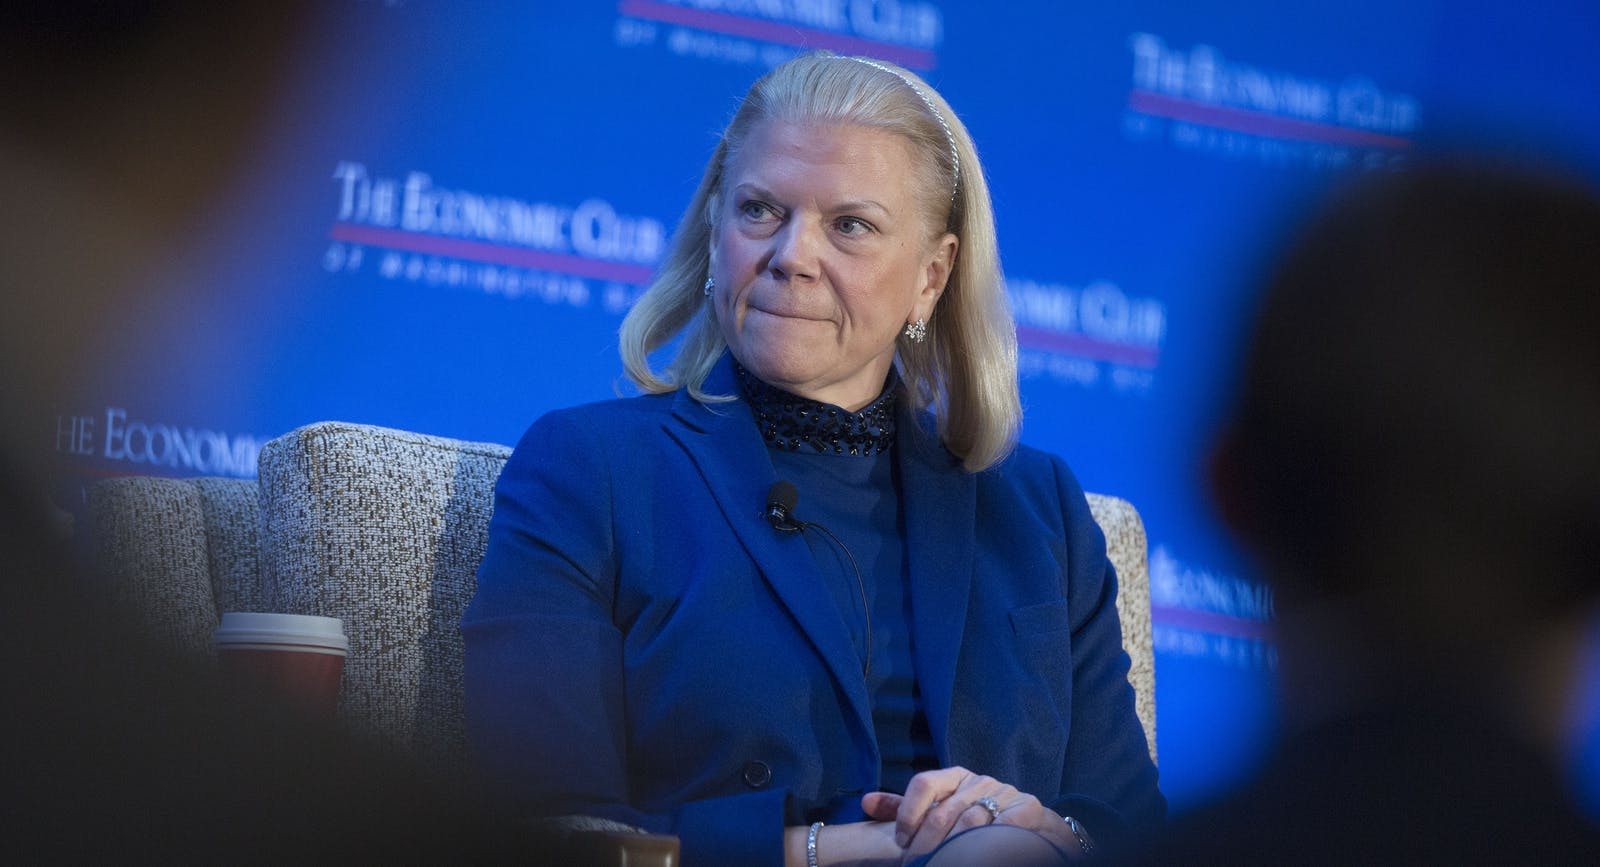 IBM CEO Ginni Rometty. Photo by Bloomberg.